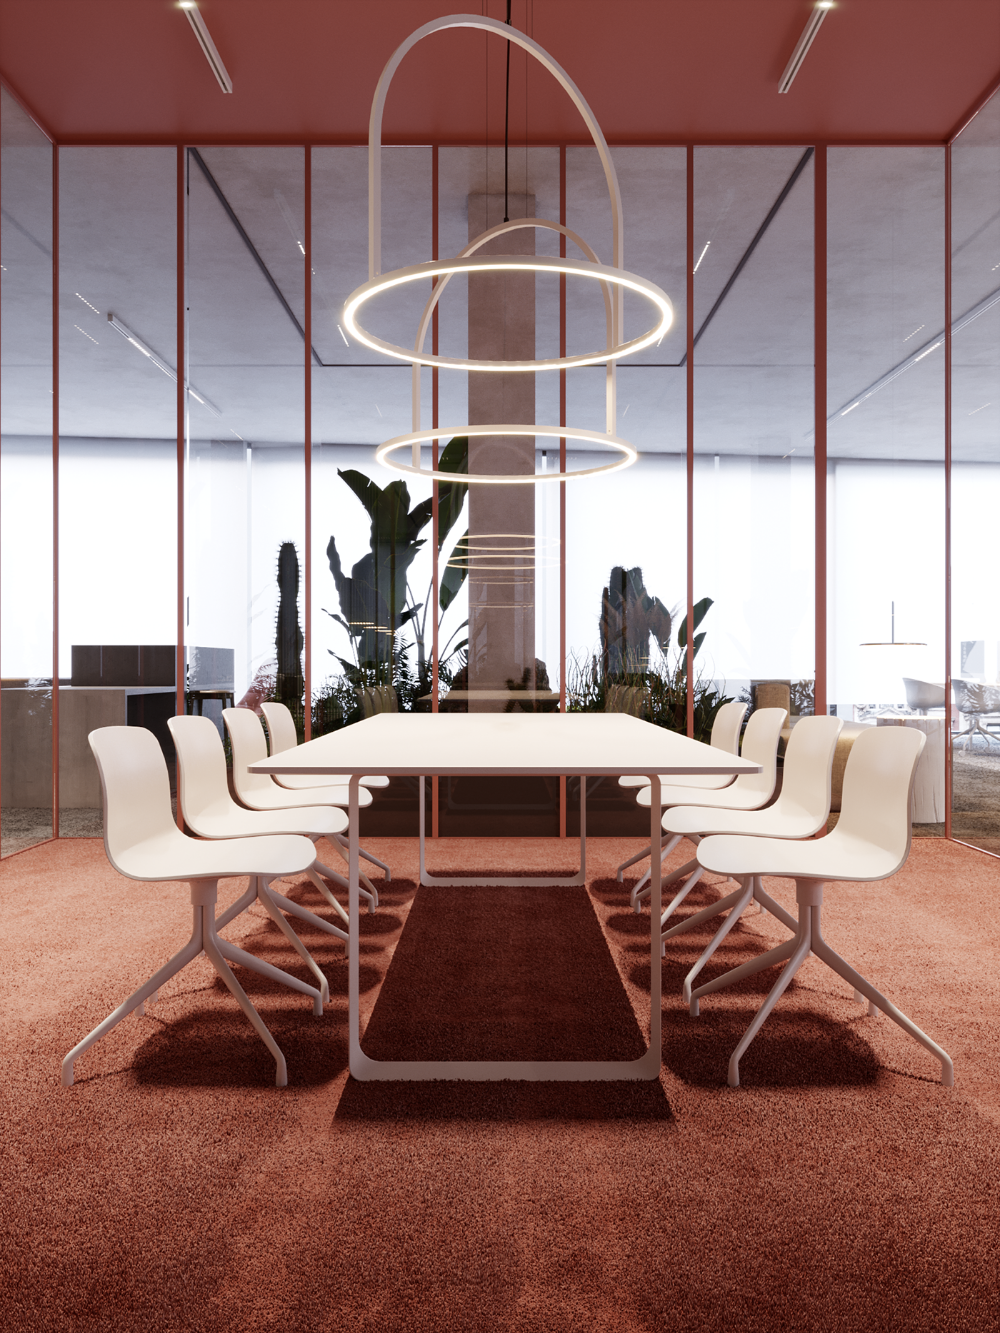 This Commercial Design And Office Space Is Unique With The Modern Lighting The Space Also H In 2020 Unique Office Furniture Office Interior Design Meeting Room Design